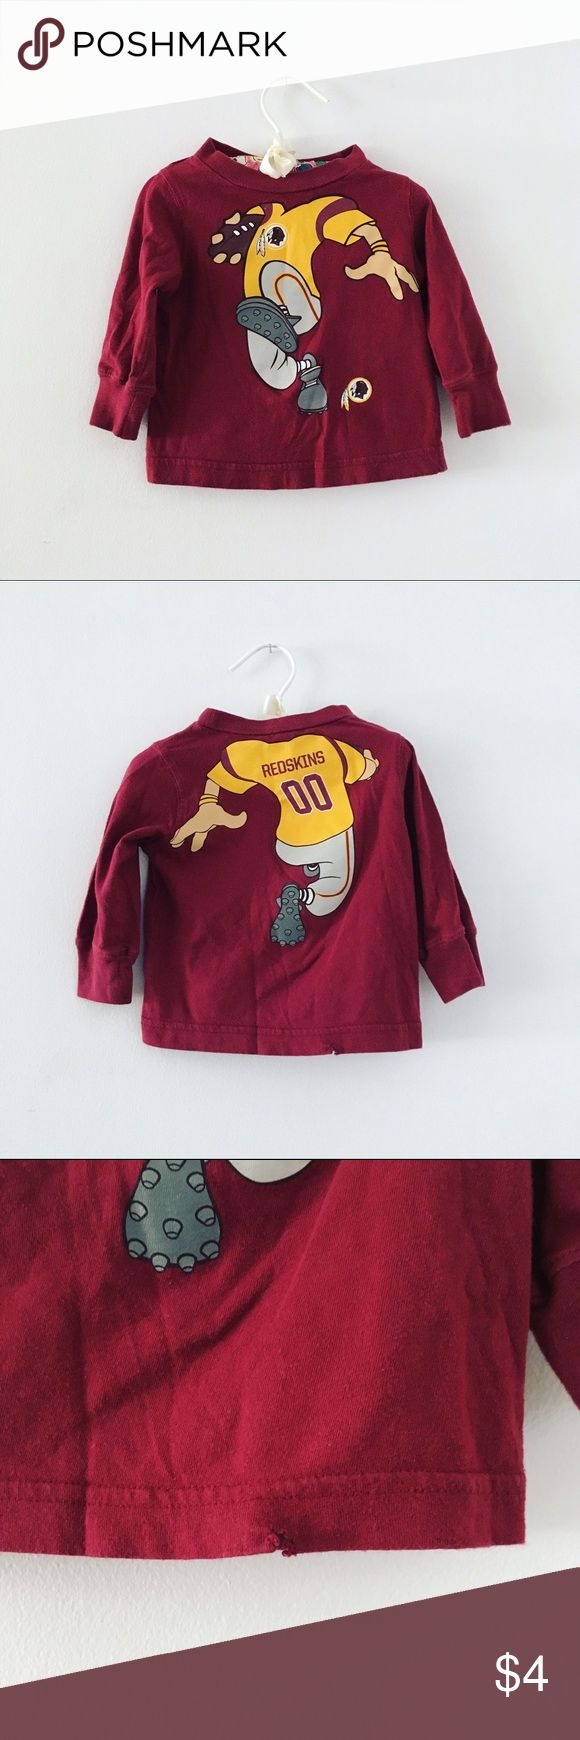 Washington Redskins 12 Months Baby Shirt Good condition Flaw shown in 3rd Size: 12 Months Take a look at my closet to bundle & save on baby clothes Cross posted on Mercarí NFL Shirts & Tops Tees - Long Sleeve